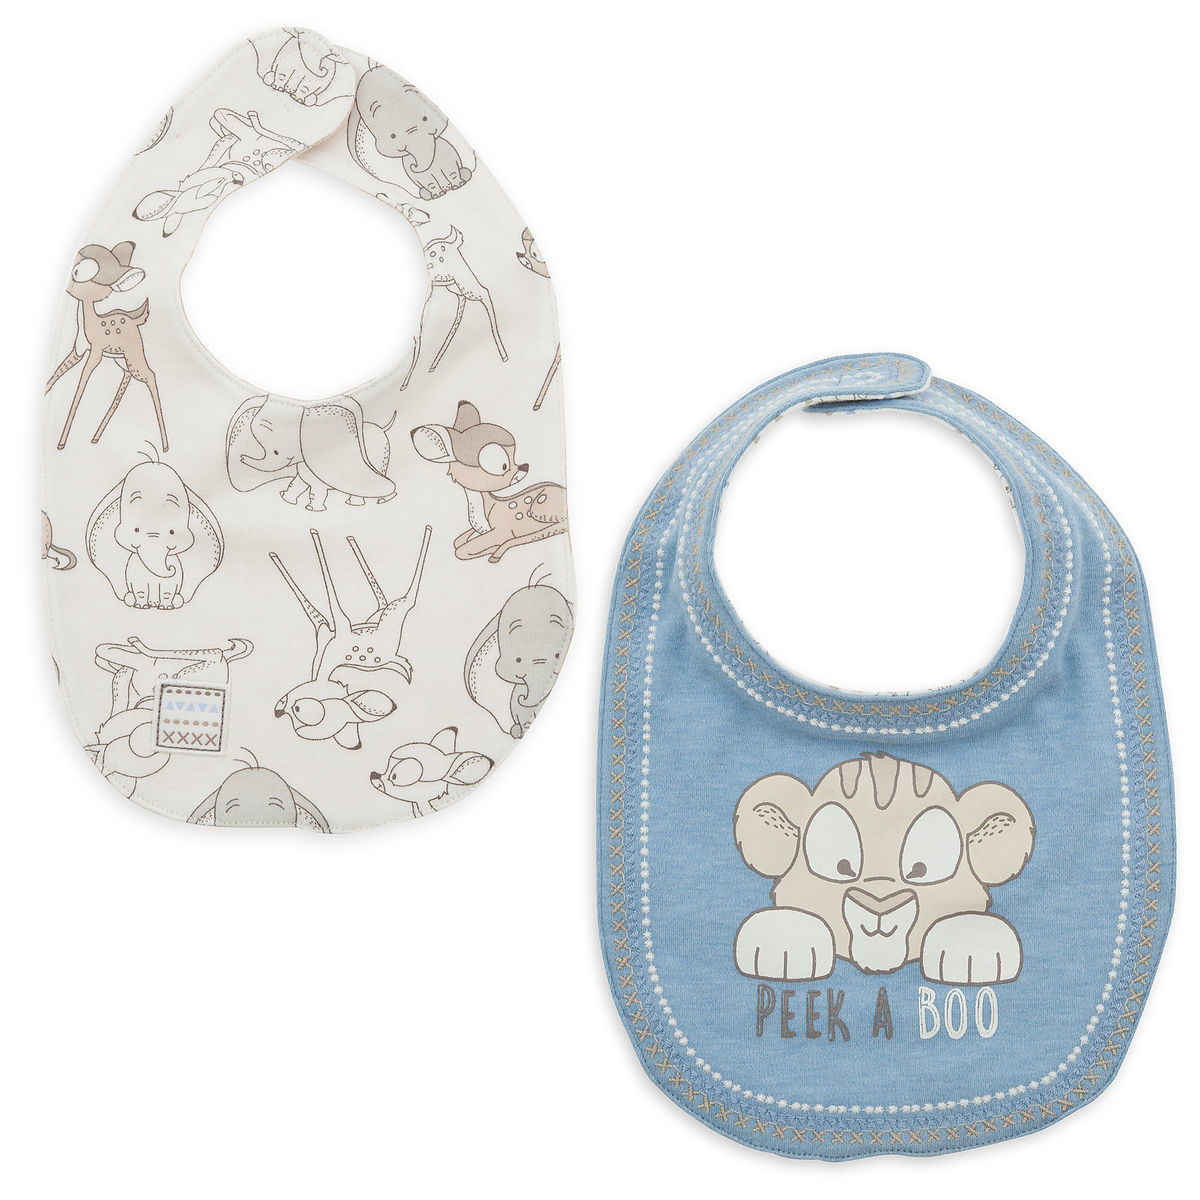 Product Image of Disney Classics Reversible Bib Set for Baby # 1